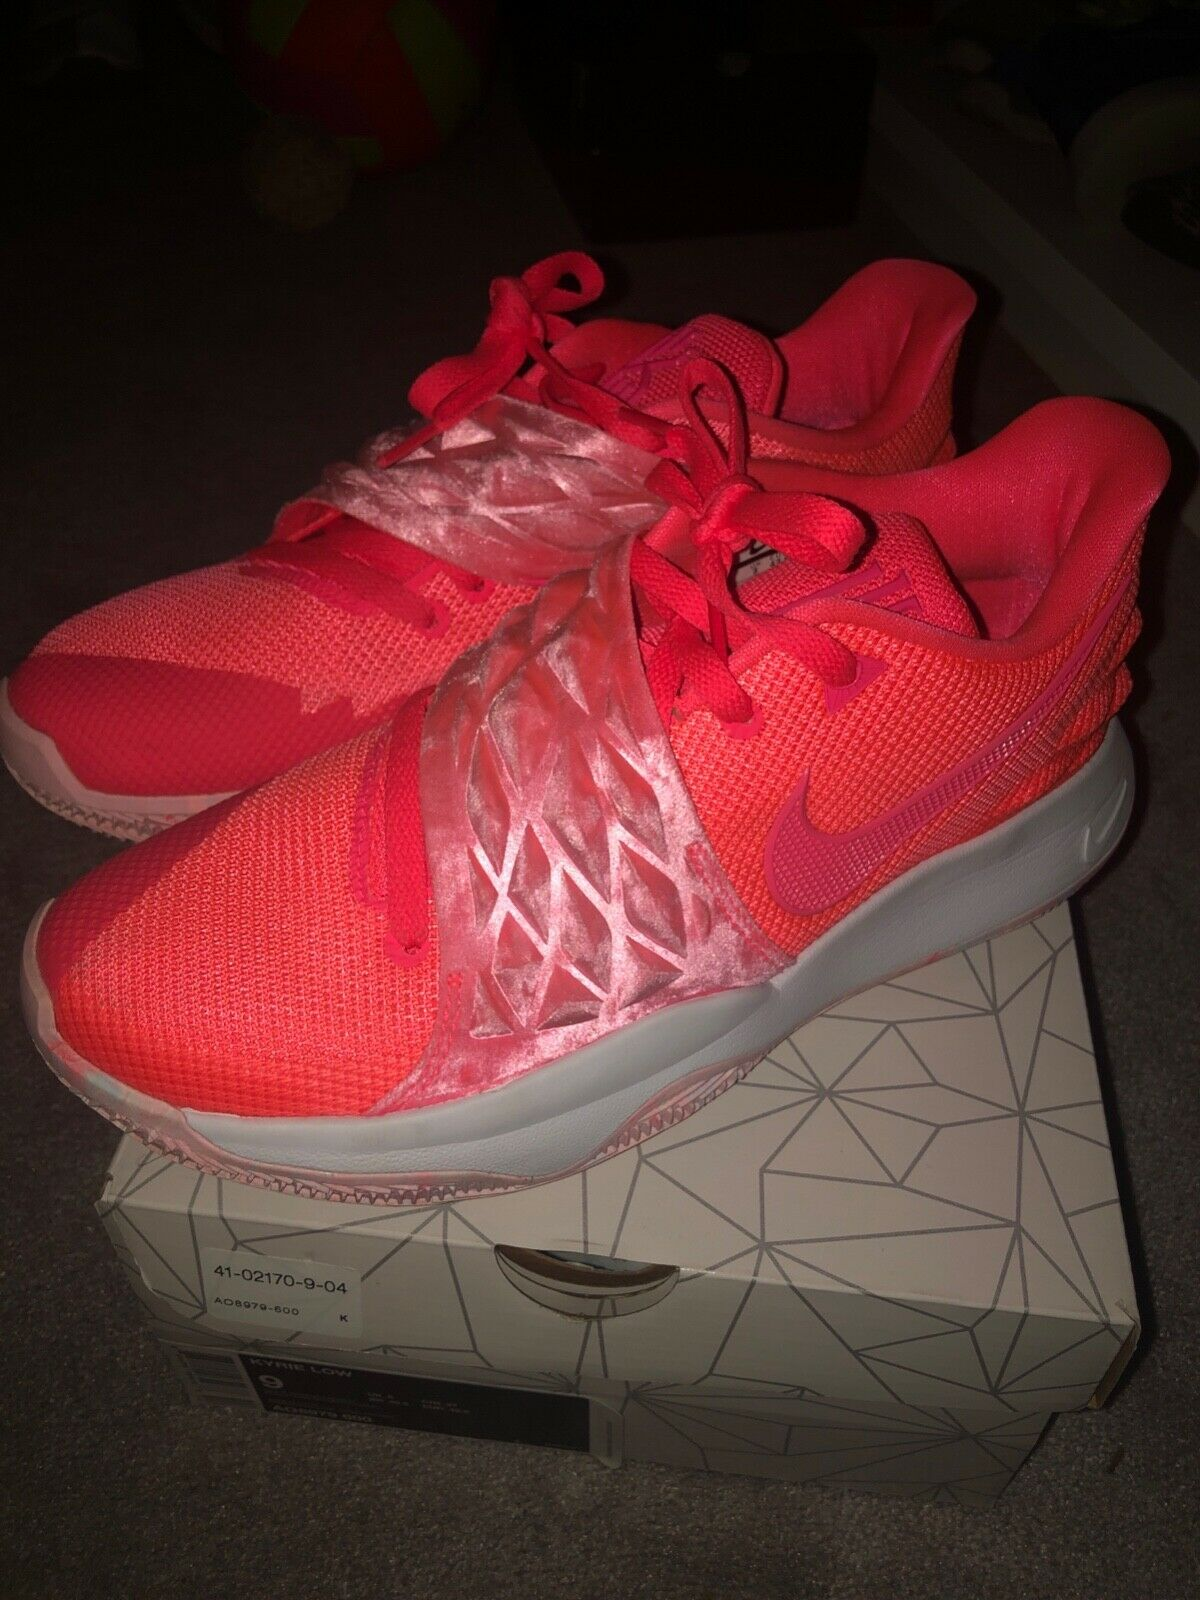 Kyrie Low Hot Punch Size 9Y